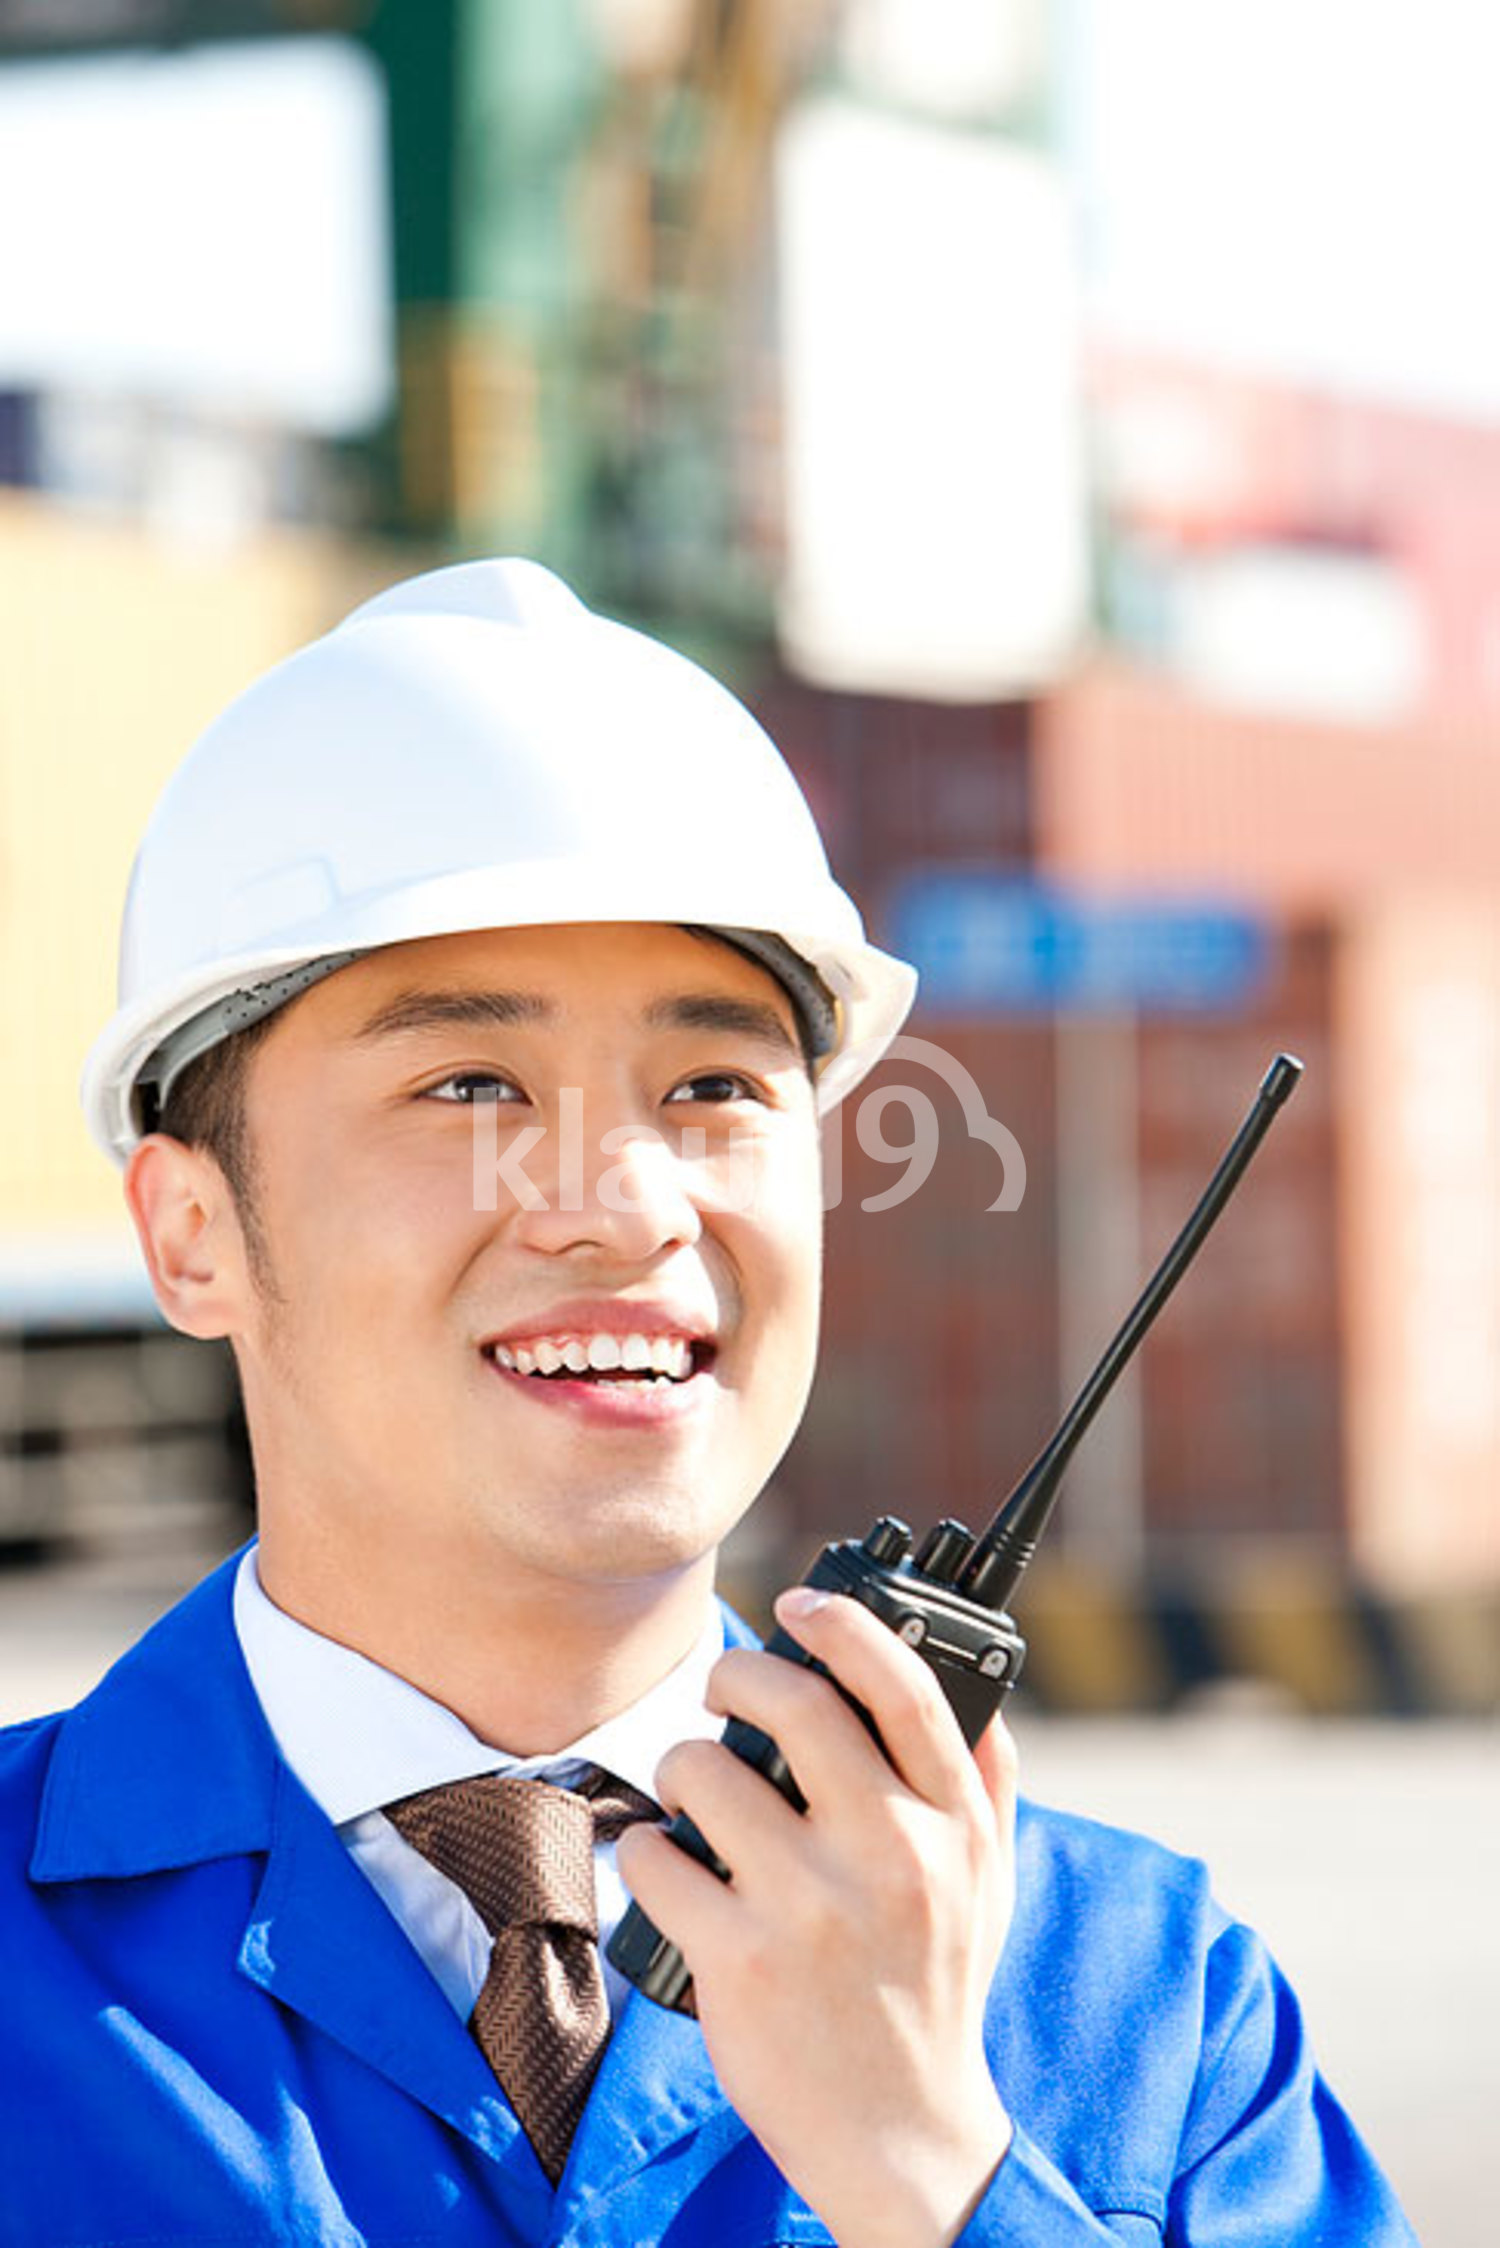 Chinese shipping industry manager with a walkie-talkie